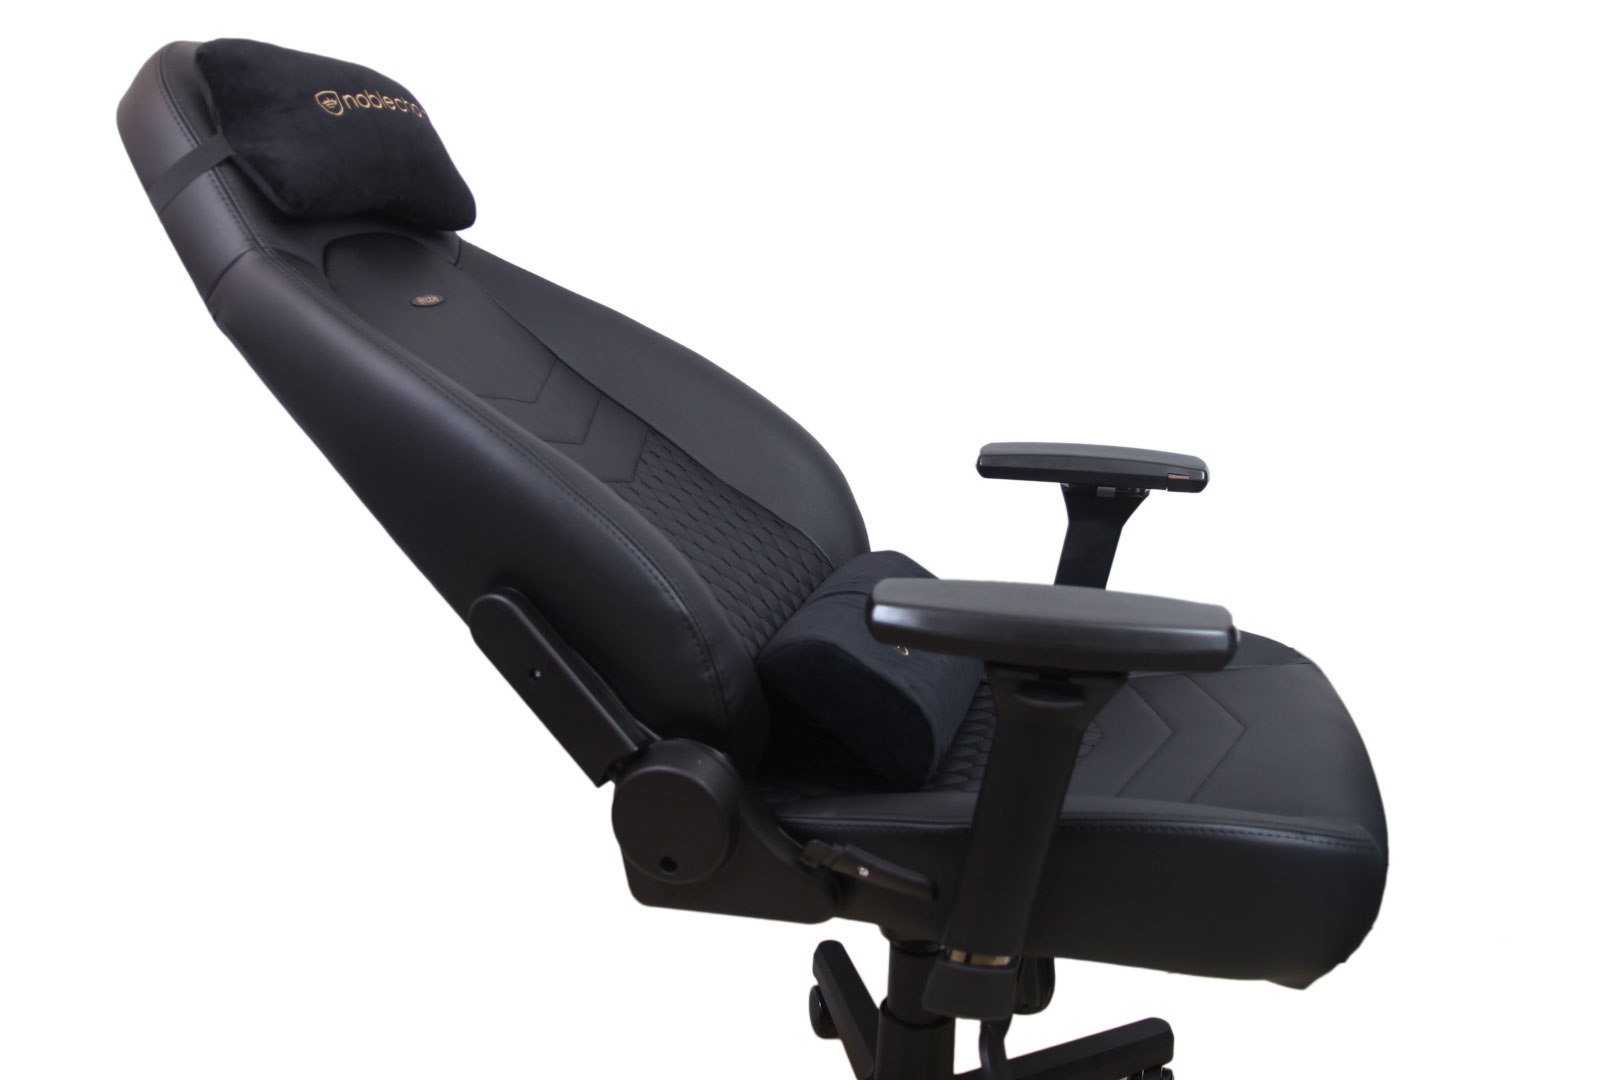 Spectacular The Icon can ut lean back until it is flat like some of the gaming chairs we have looked at in the past can but it does still lean to